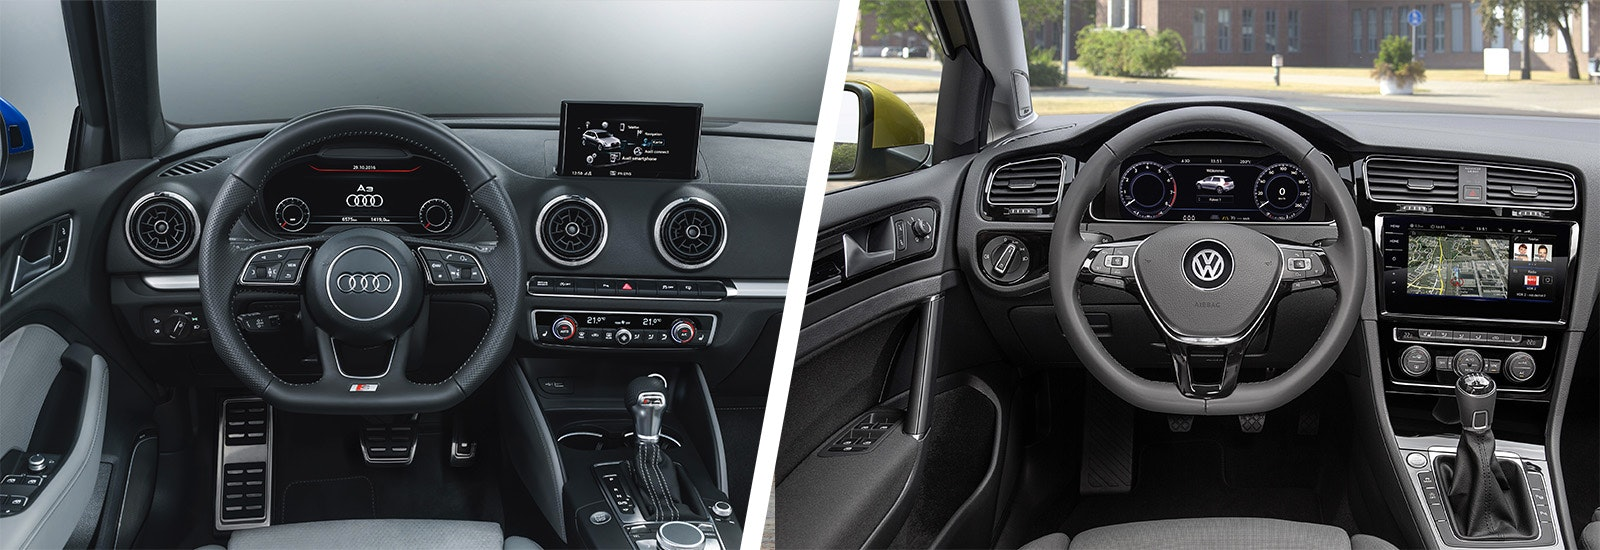 How Much Does An Audi Cost >> Audi A3 vs VW Golf – side-by-side comparison | carwow